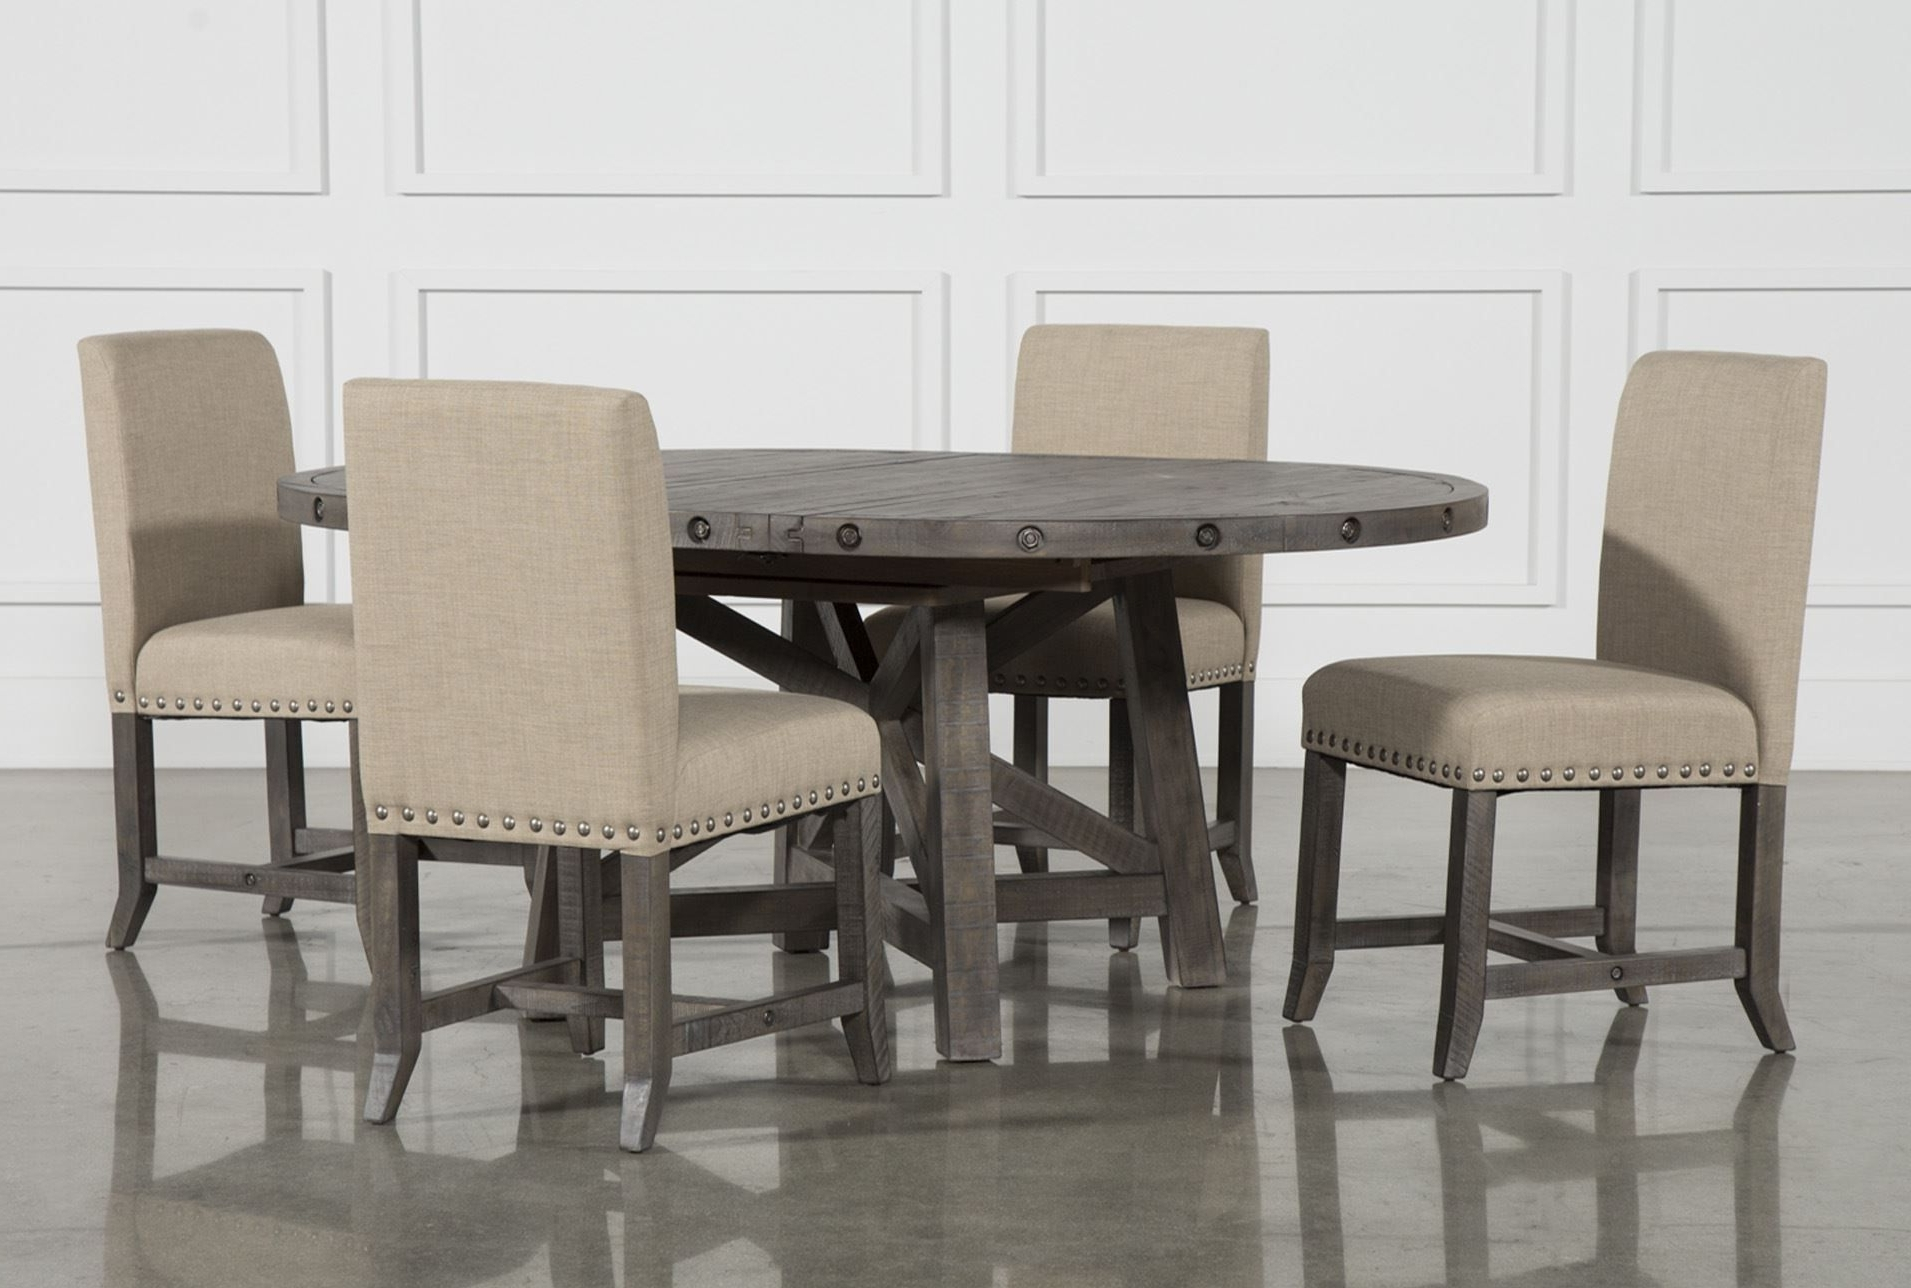 Jaxon Grey 5 Piece Round Extension Dining Set W/upholstered Chairs Inside Most Recently Released Chandler 7 Piece Extension Dining Sets With Wood Side Chairs (View 12 of 25)